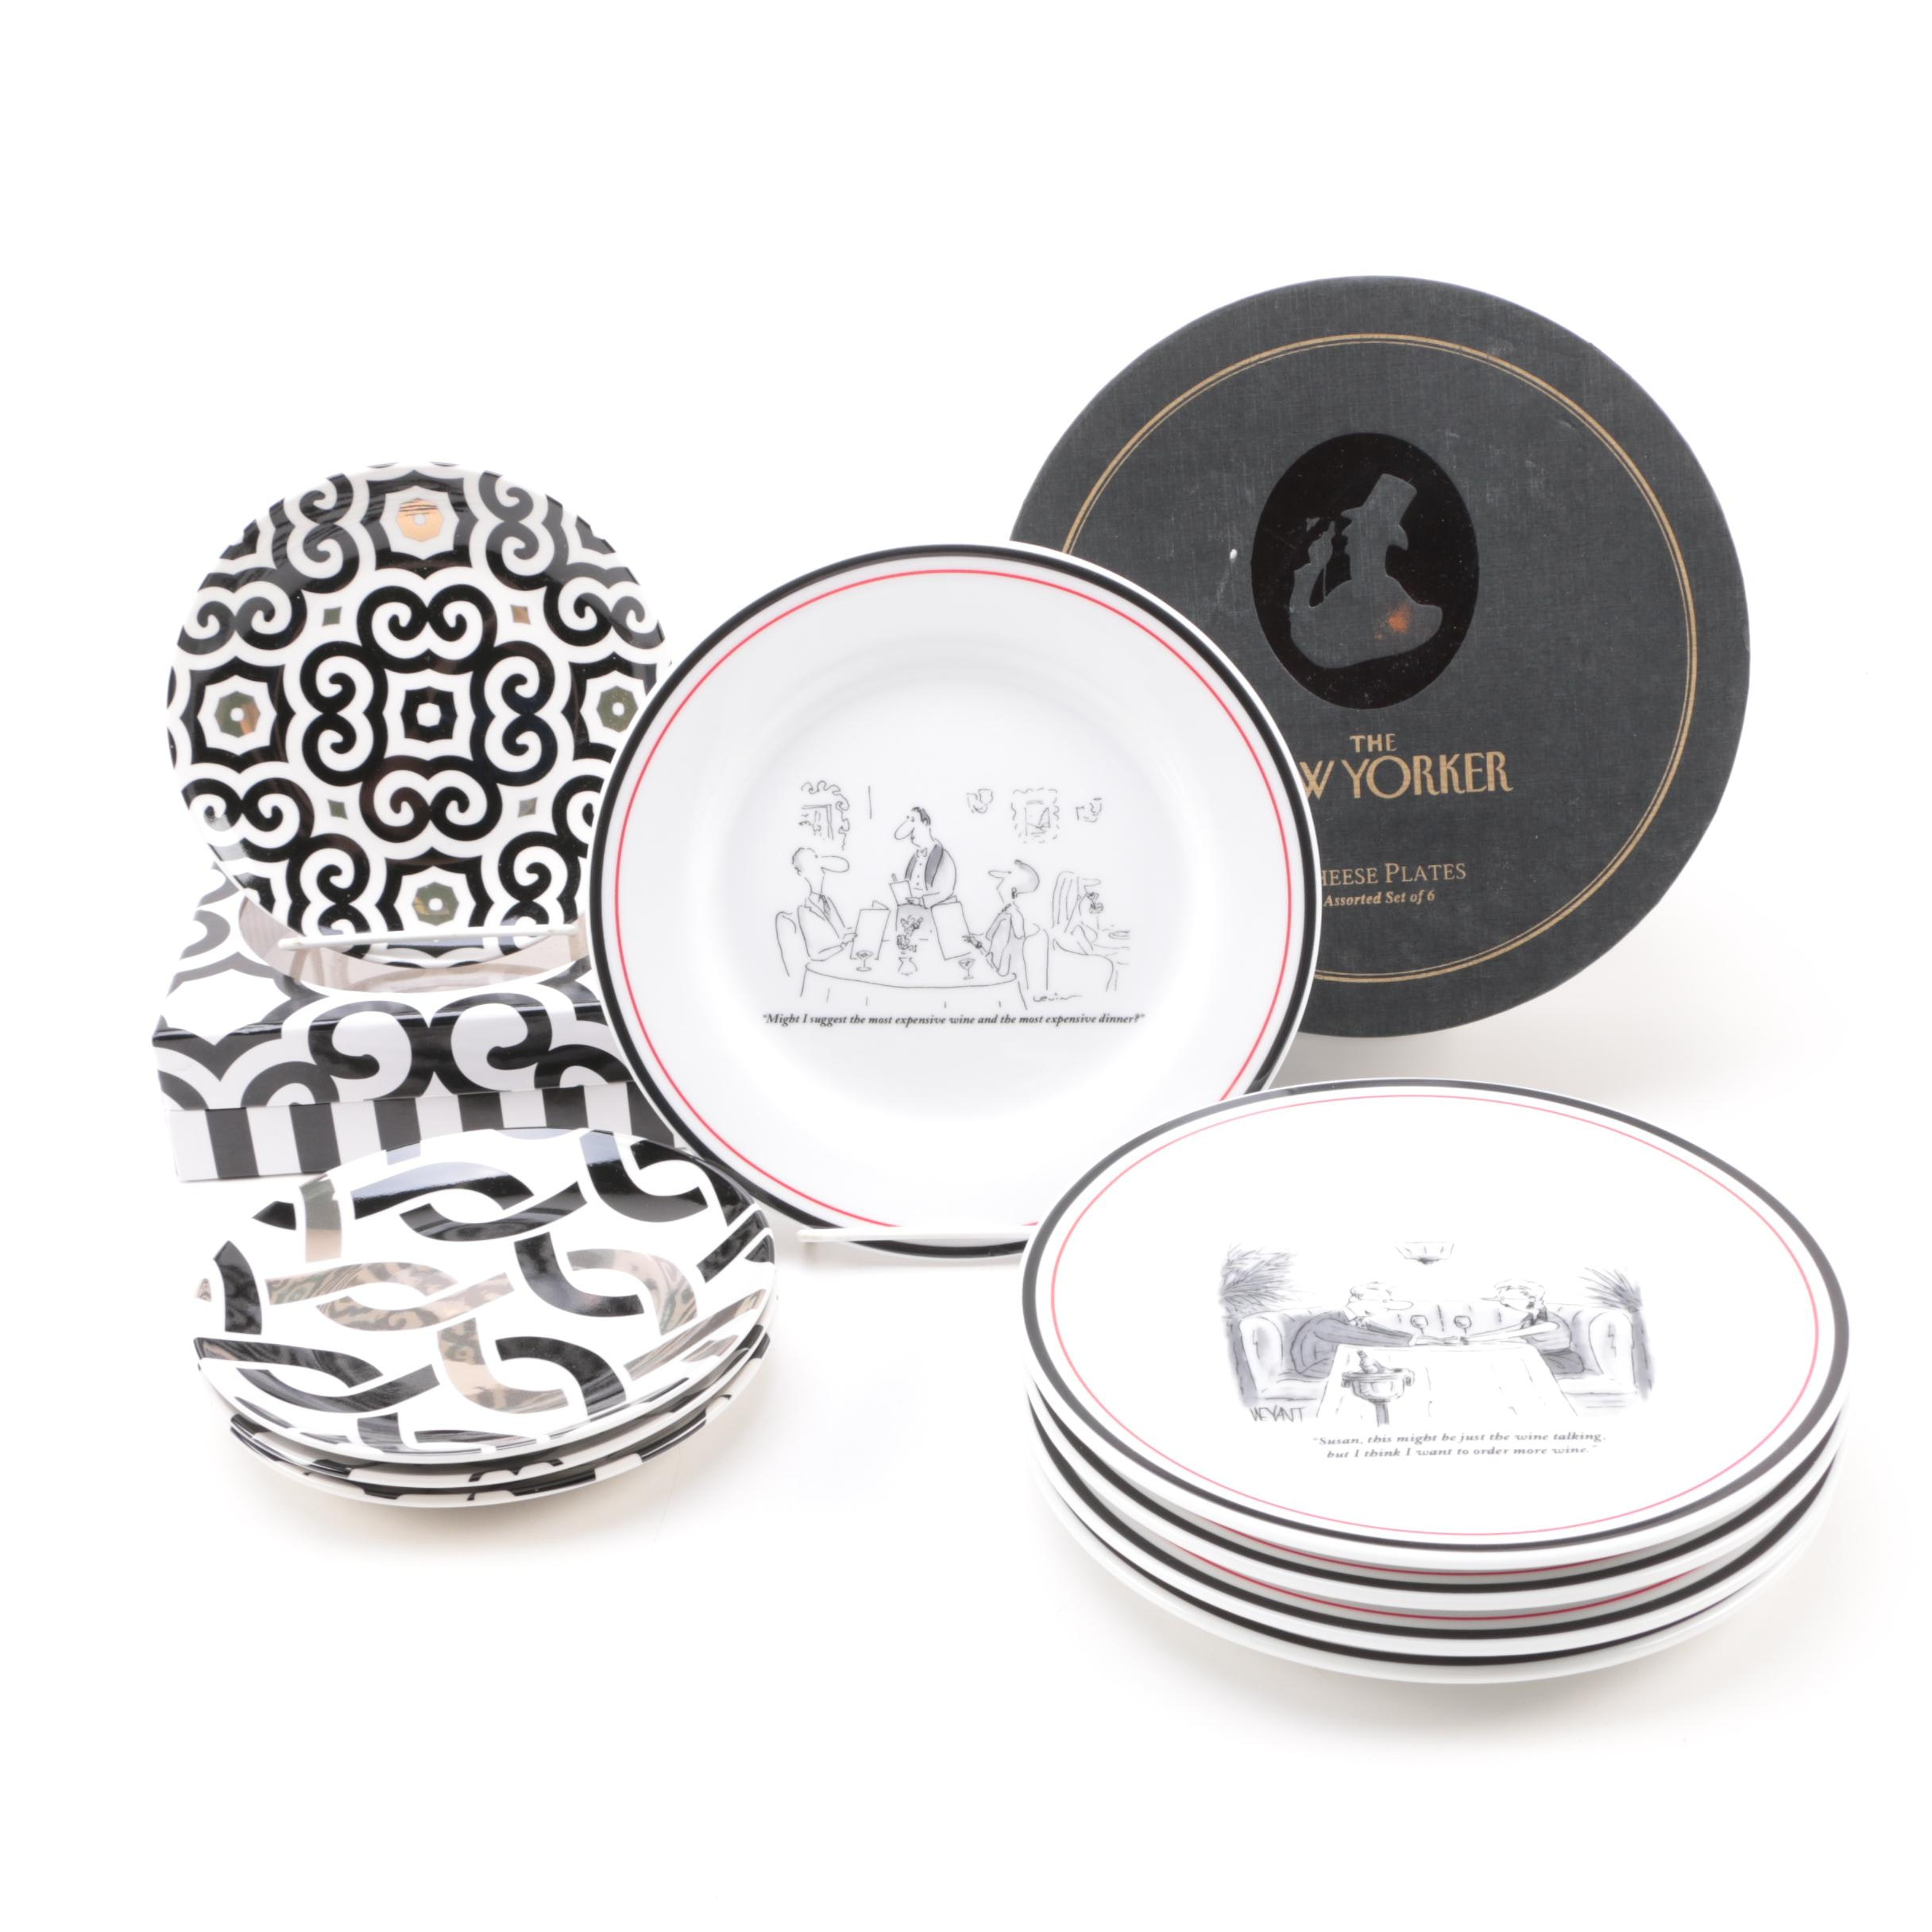 Plate Sets Including \ The New Yorker\  Cheese Plates ...  sc 1 st  EBTH.com & Plate Sets Including \